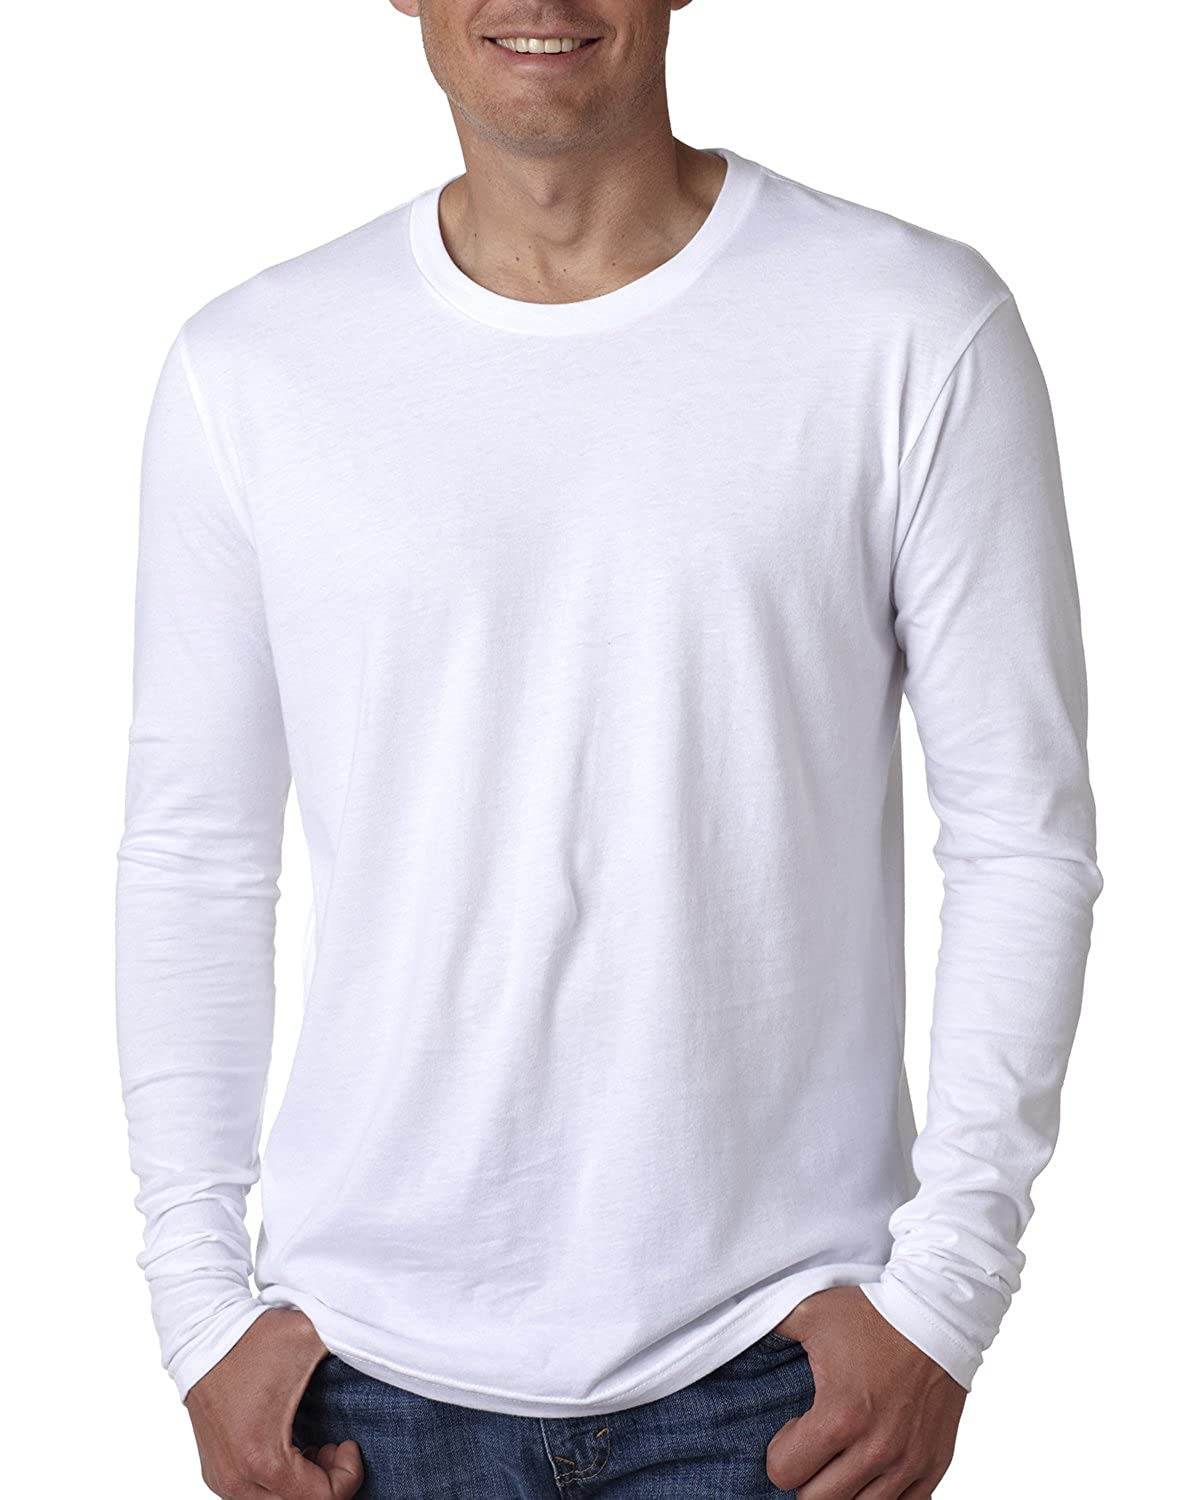 Next Level - Premium Long Sleeve Crew - 3601 | Amazon.com